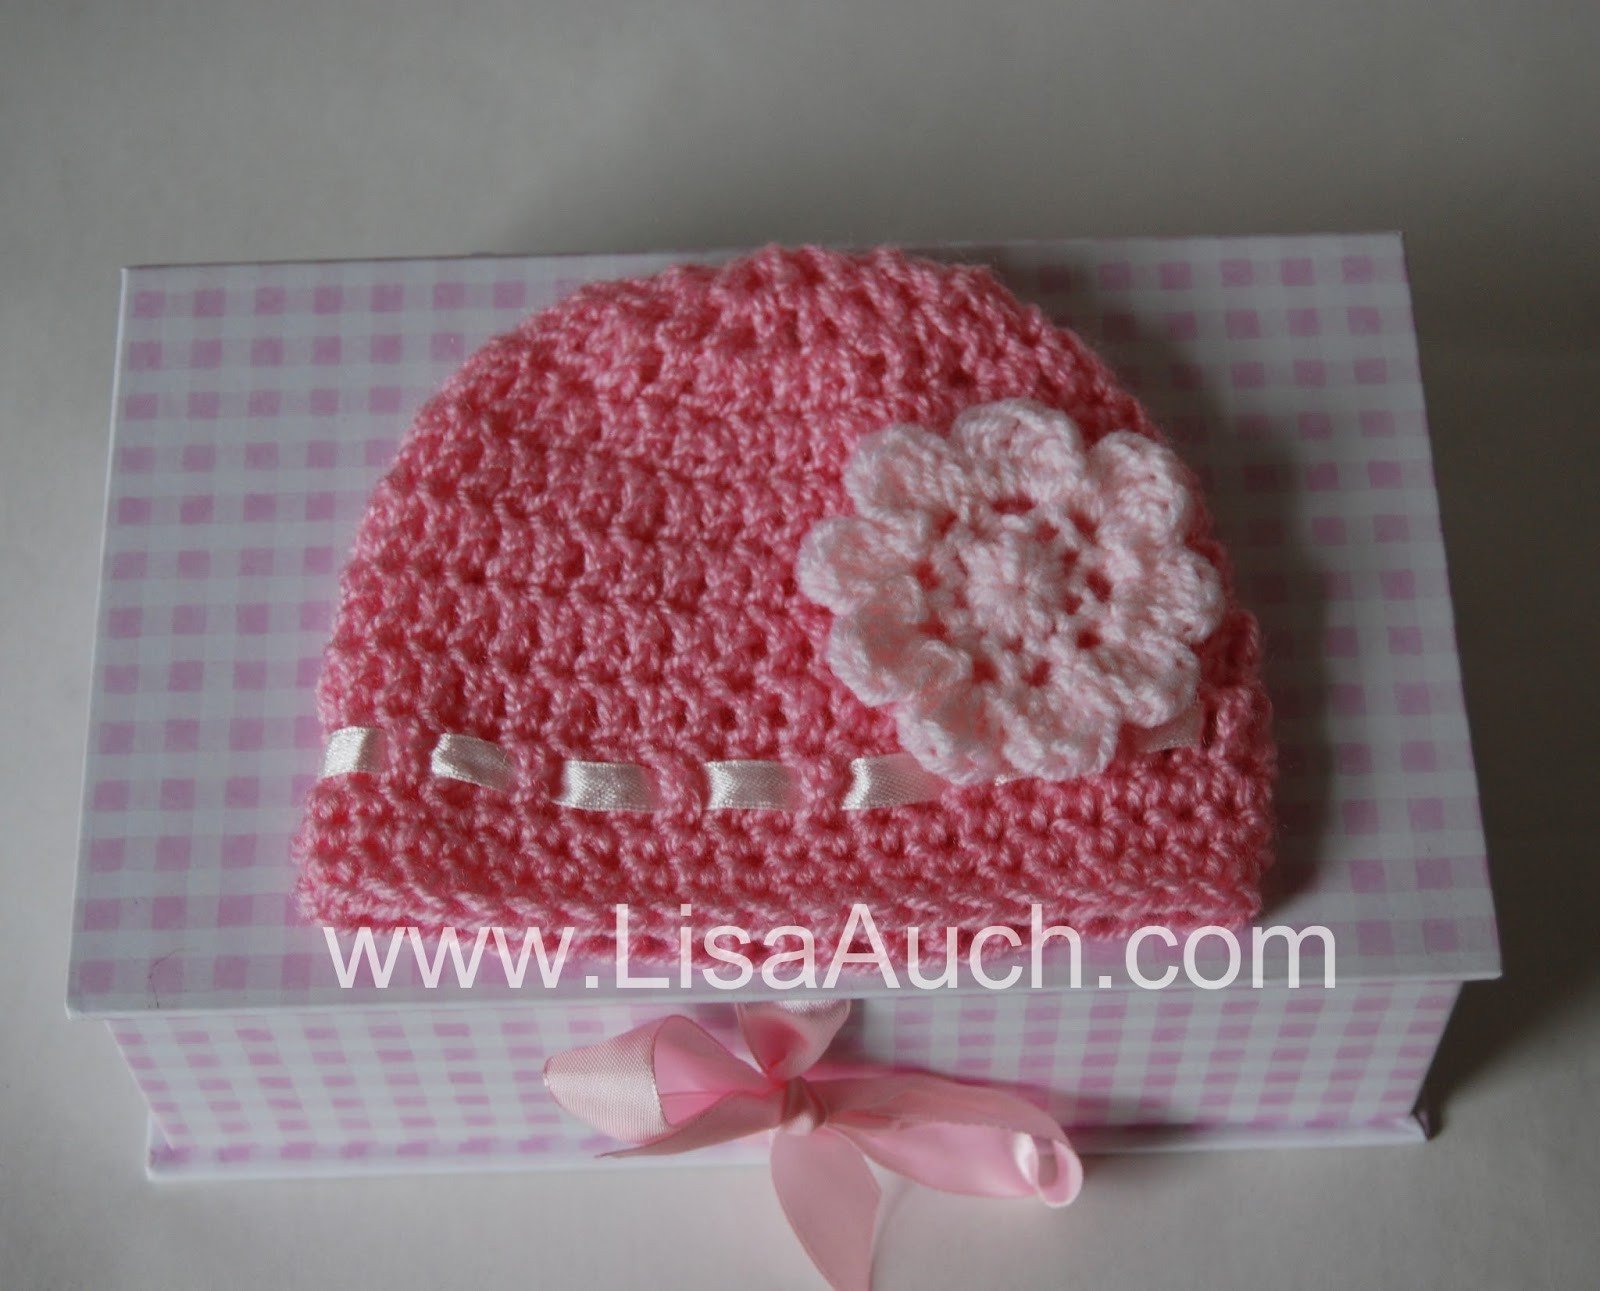 Crochet Patterns For Baby Girl : Free Crochet Baby Hat Pattern